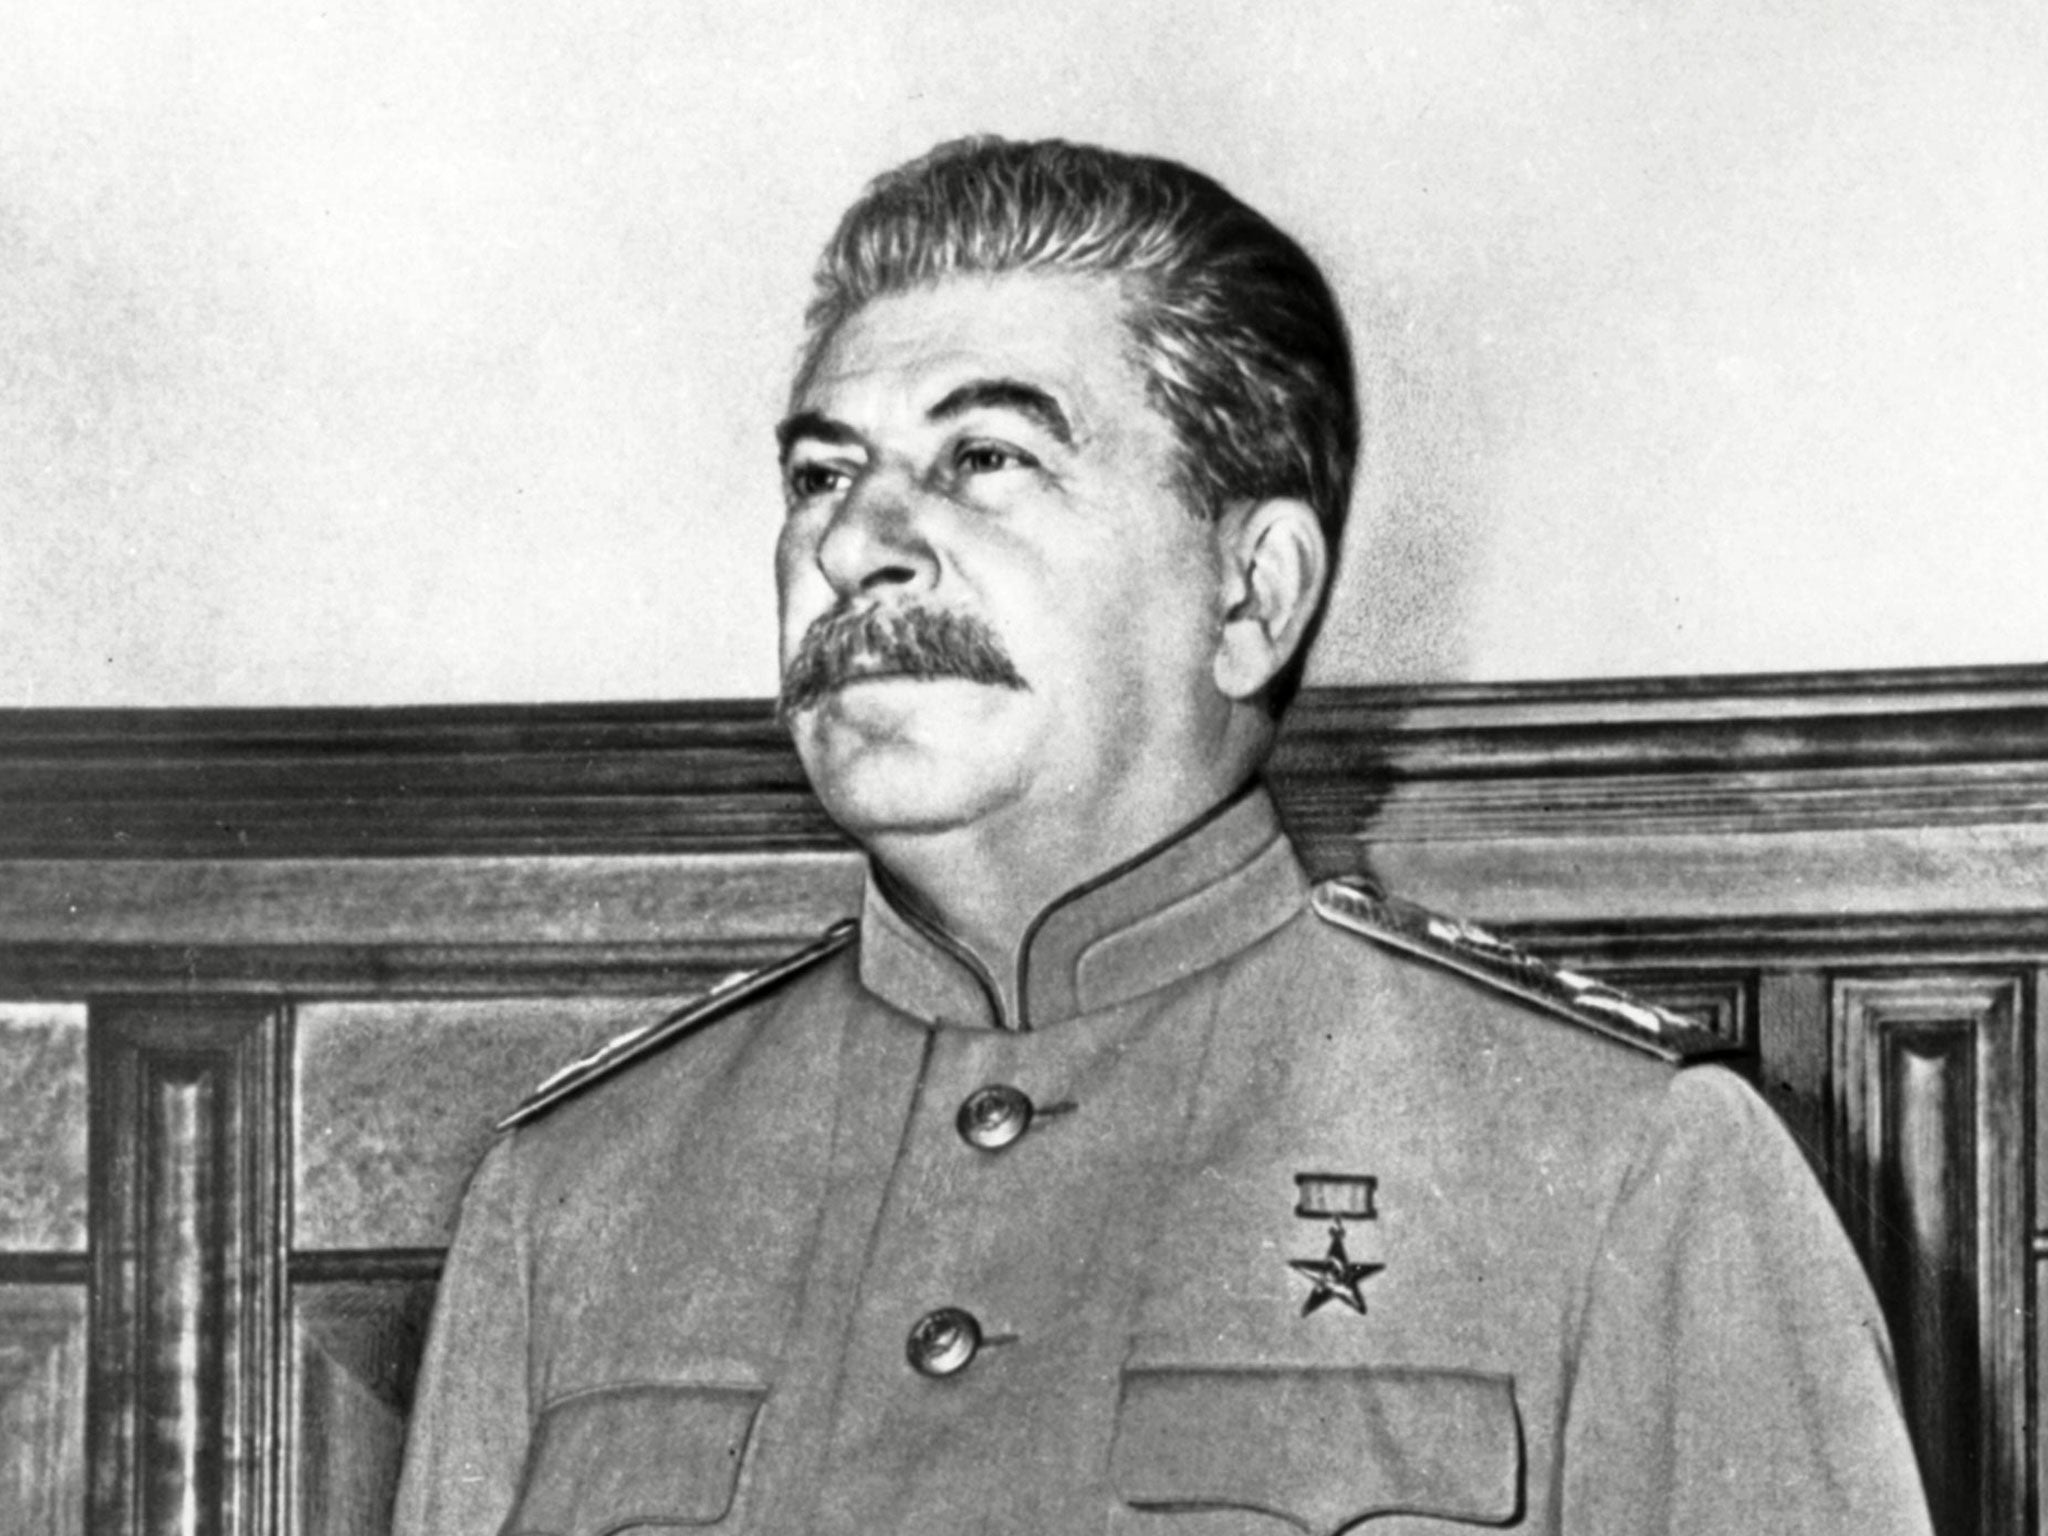 stalin thesis Stalinism is the means of governing and related policies implemented from the 1920s to 1953 by joseph stalin (1878-1953) stalinist policies and ideas as developed in the soviet union included rapid industrialization, the theory of socialism in one country, a centralized state, collectivization of agriculture, a cult of personality and.